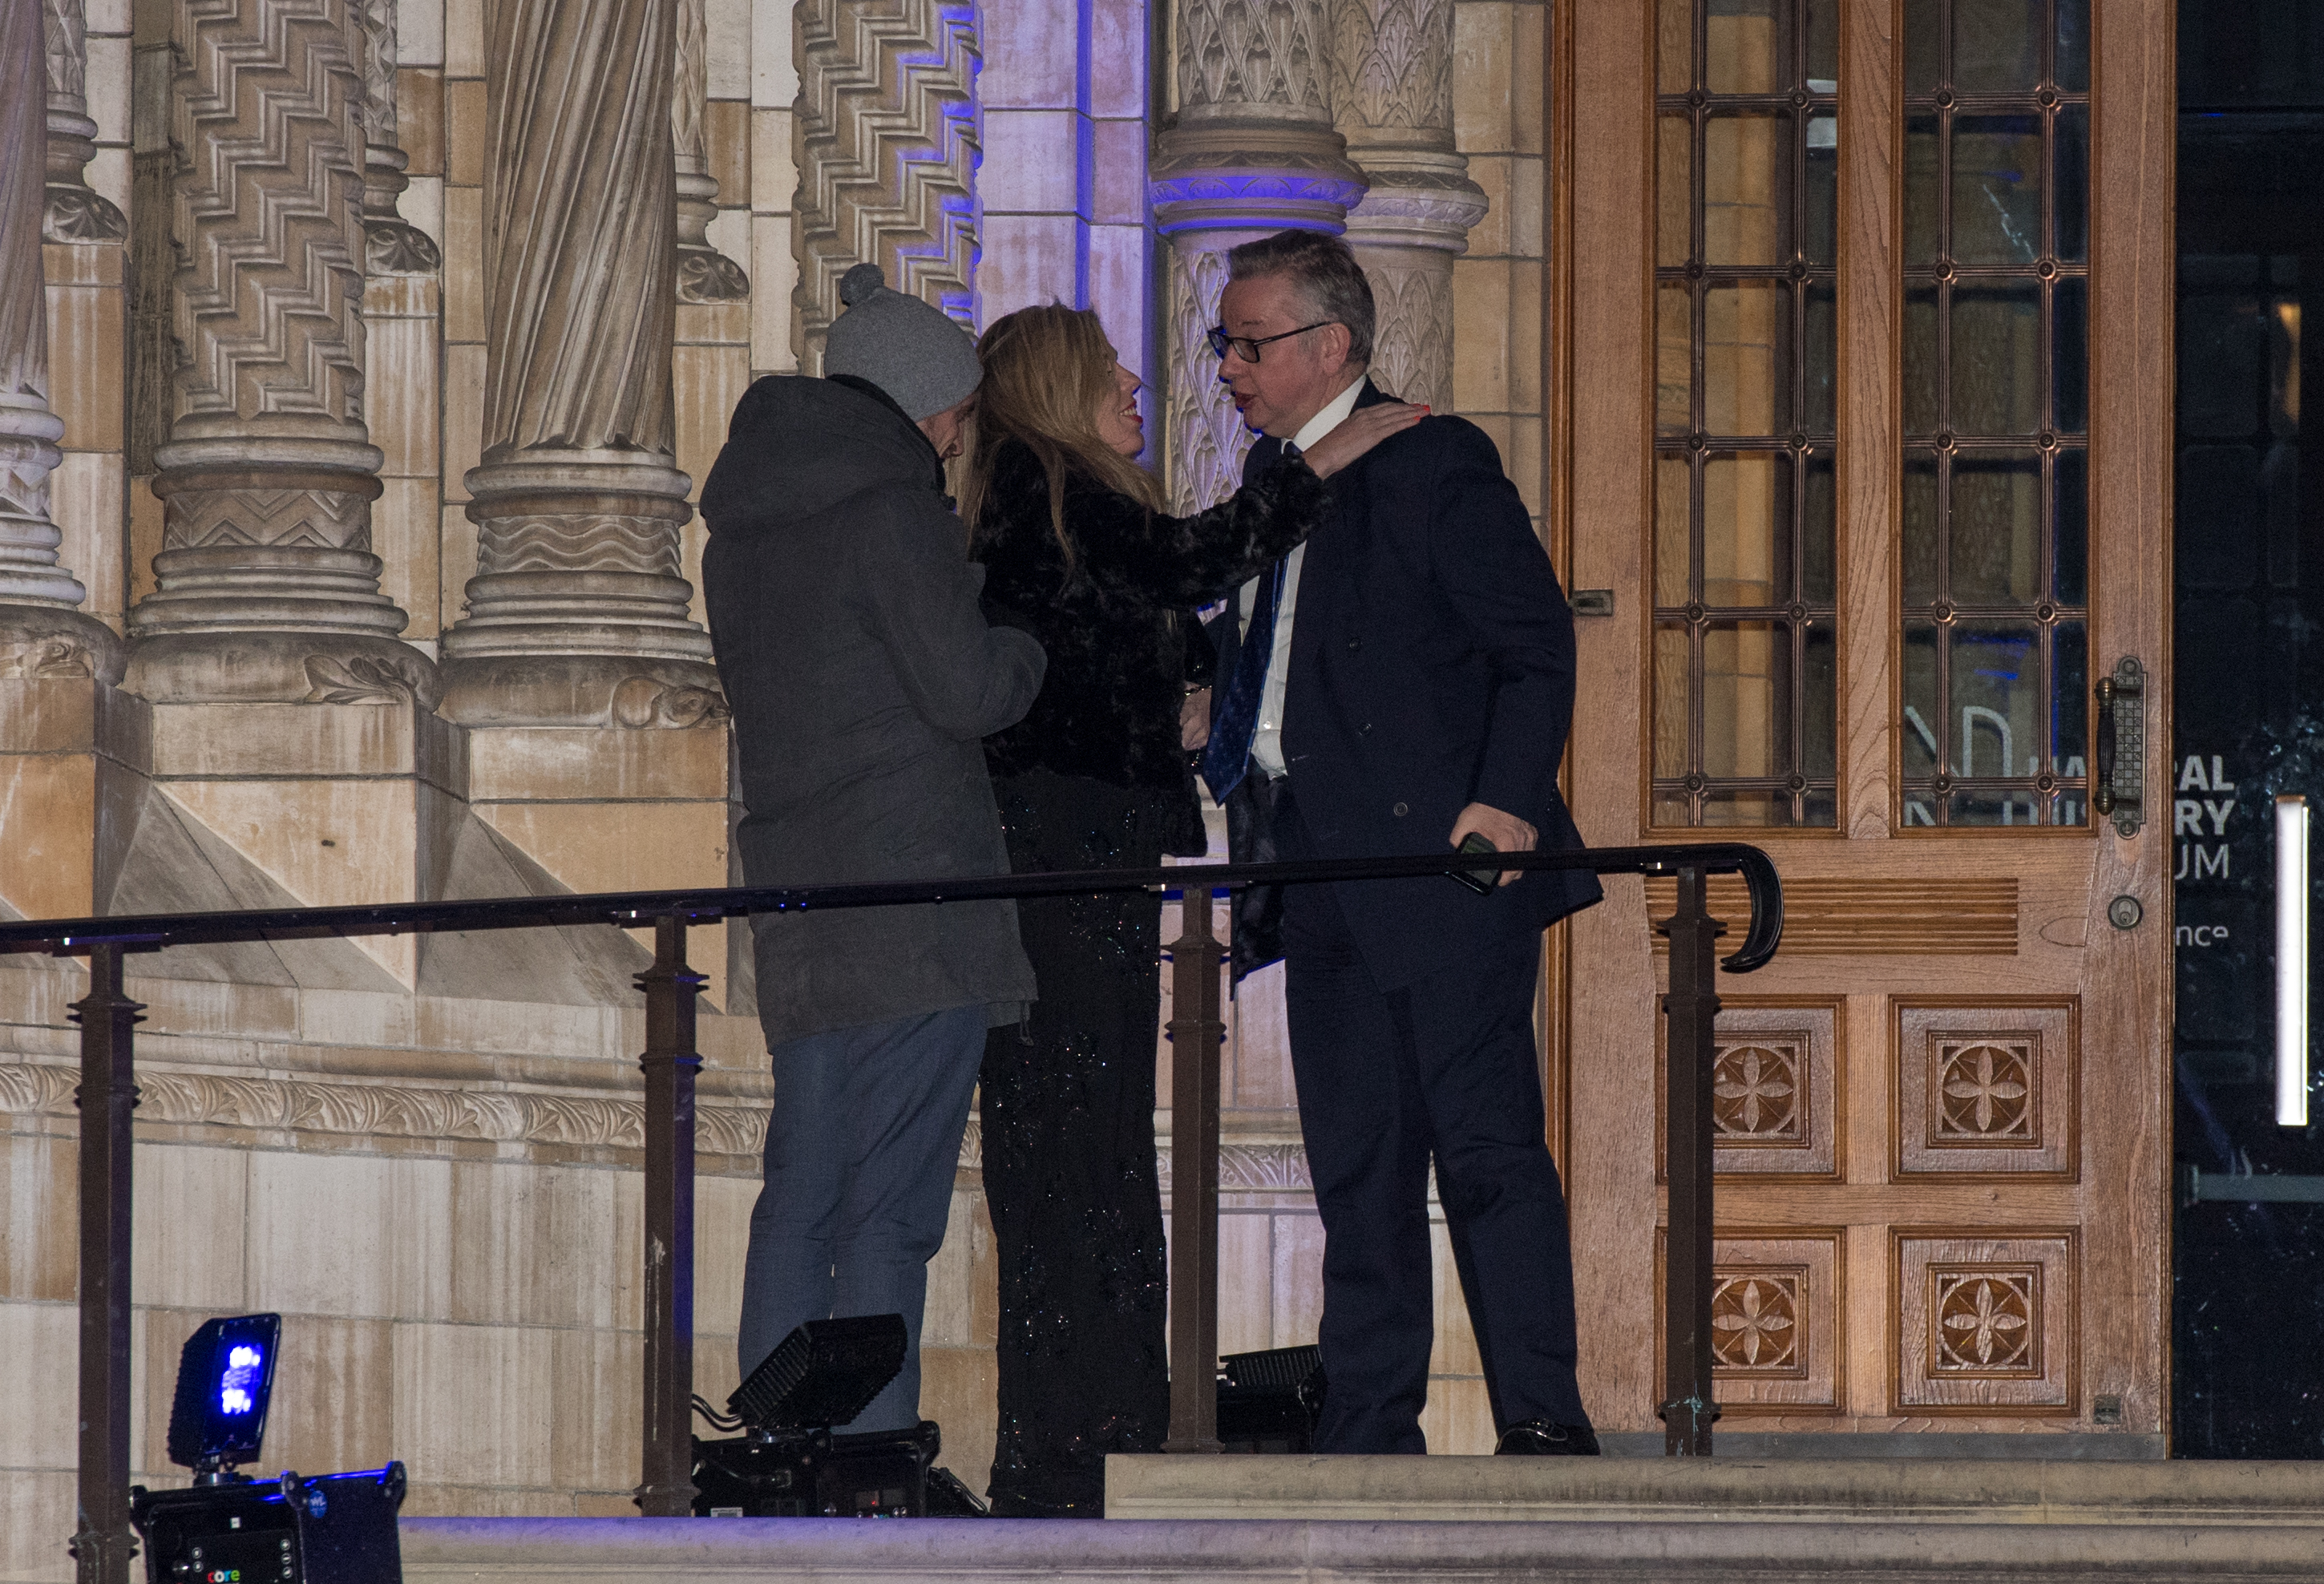 LONDON, ENGLAND - FEBRUARY 07:  Environment Secretary, Michael Gove hugs Carrie Symonds as he leaves the Conservative party Black and White Ball at Natural History Museum on February 7, 2018 in London, England. The ball is a fundraising event for the political party where donors pay to spend the evening with cabinet ministers and the Prime Minister.  (Photo by Chris J Ratcliffe/Getty Images)